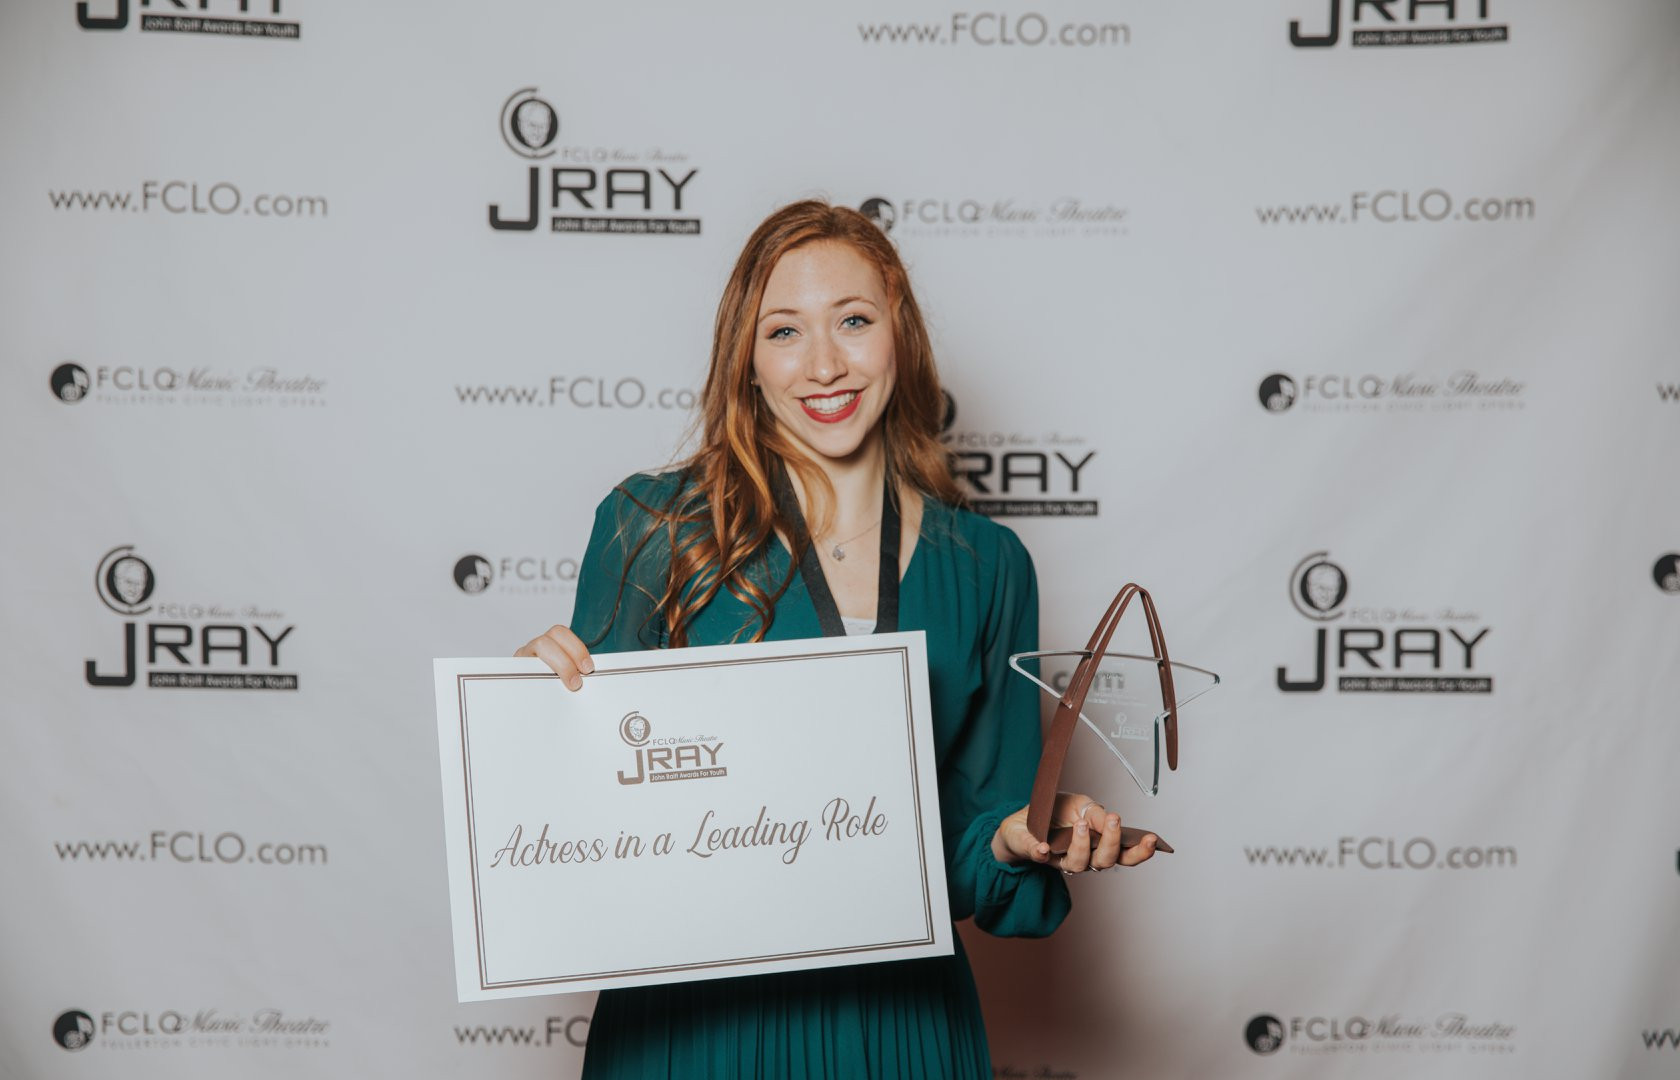 A (Clearly) Surprised JRAY Winner